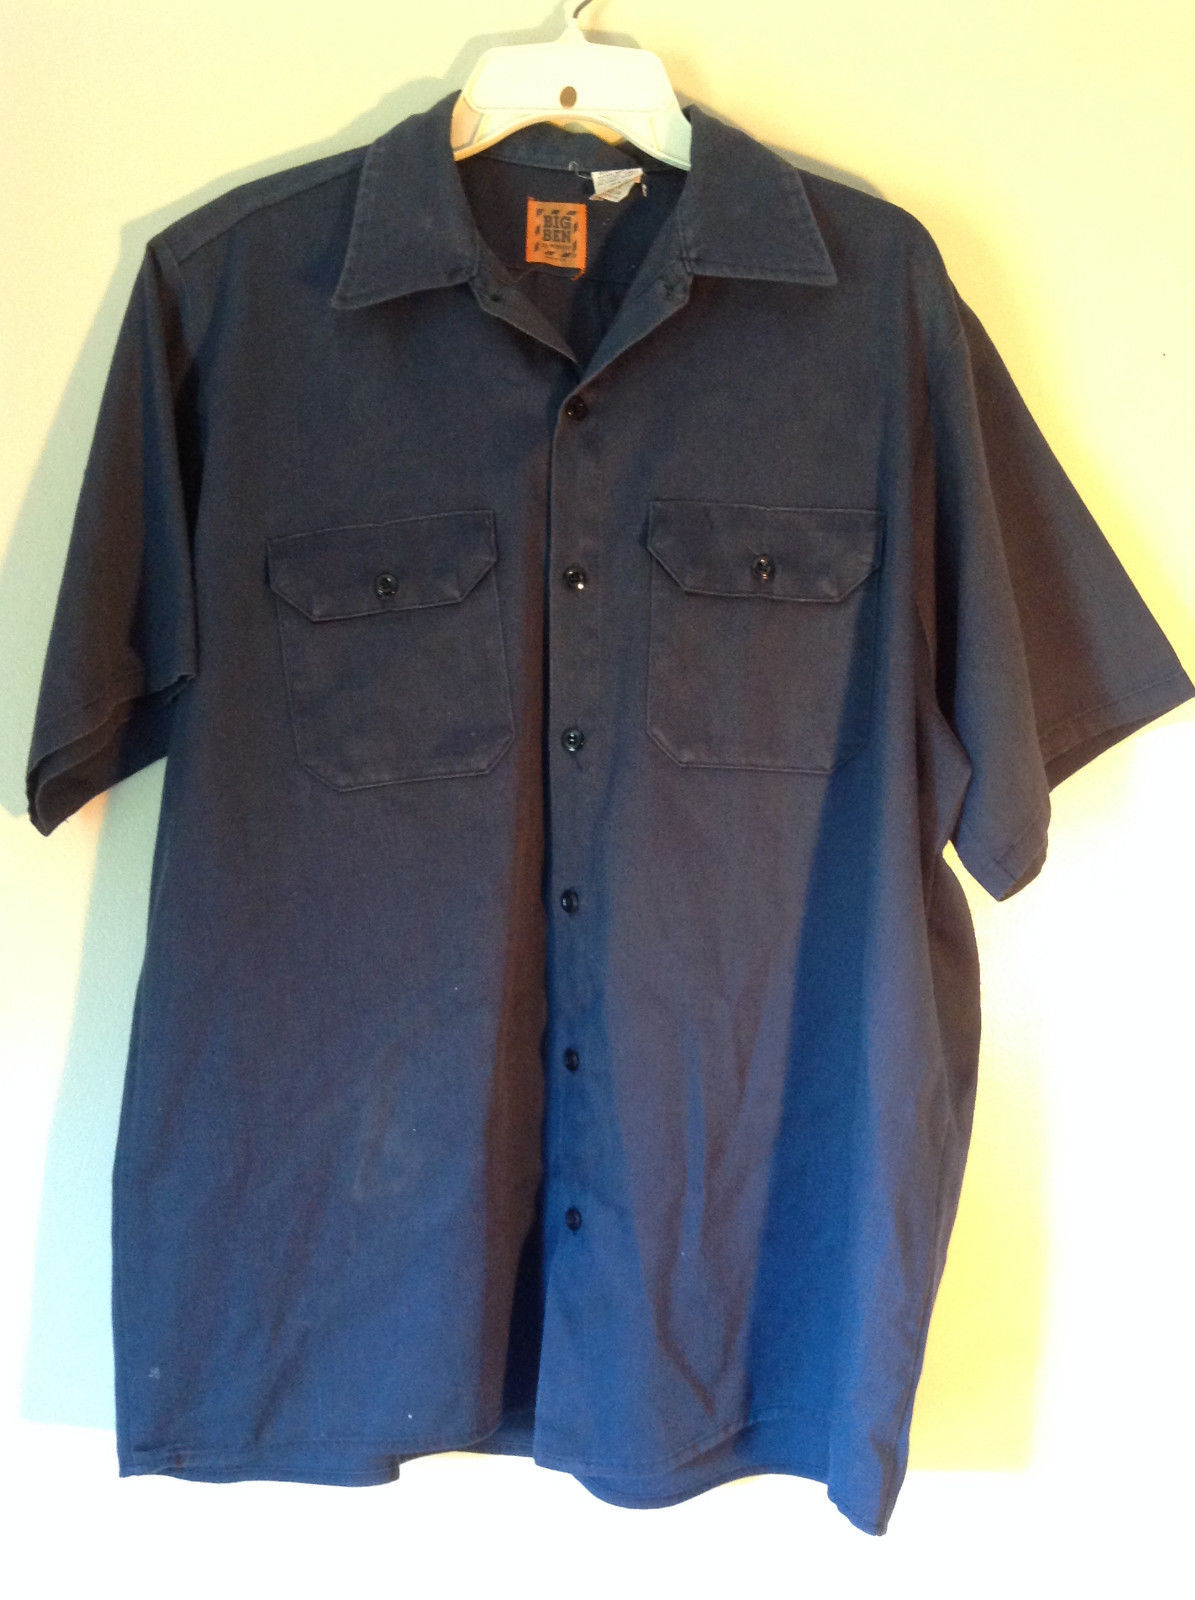 Size Large Short Sleeve Blue Button Up Shirt by Big Ben Two Pockets Made in USA